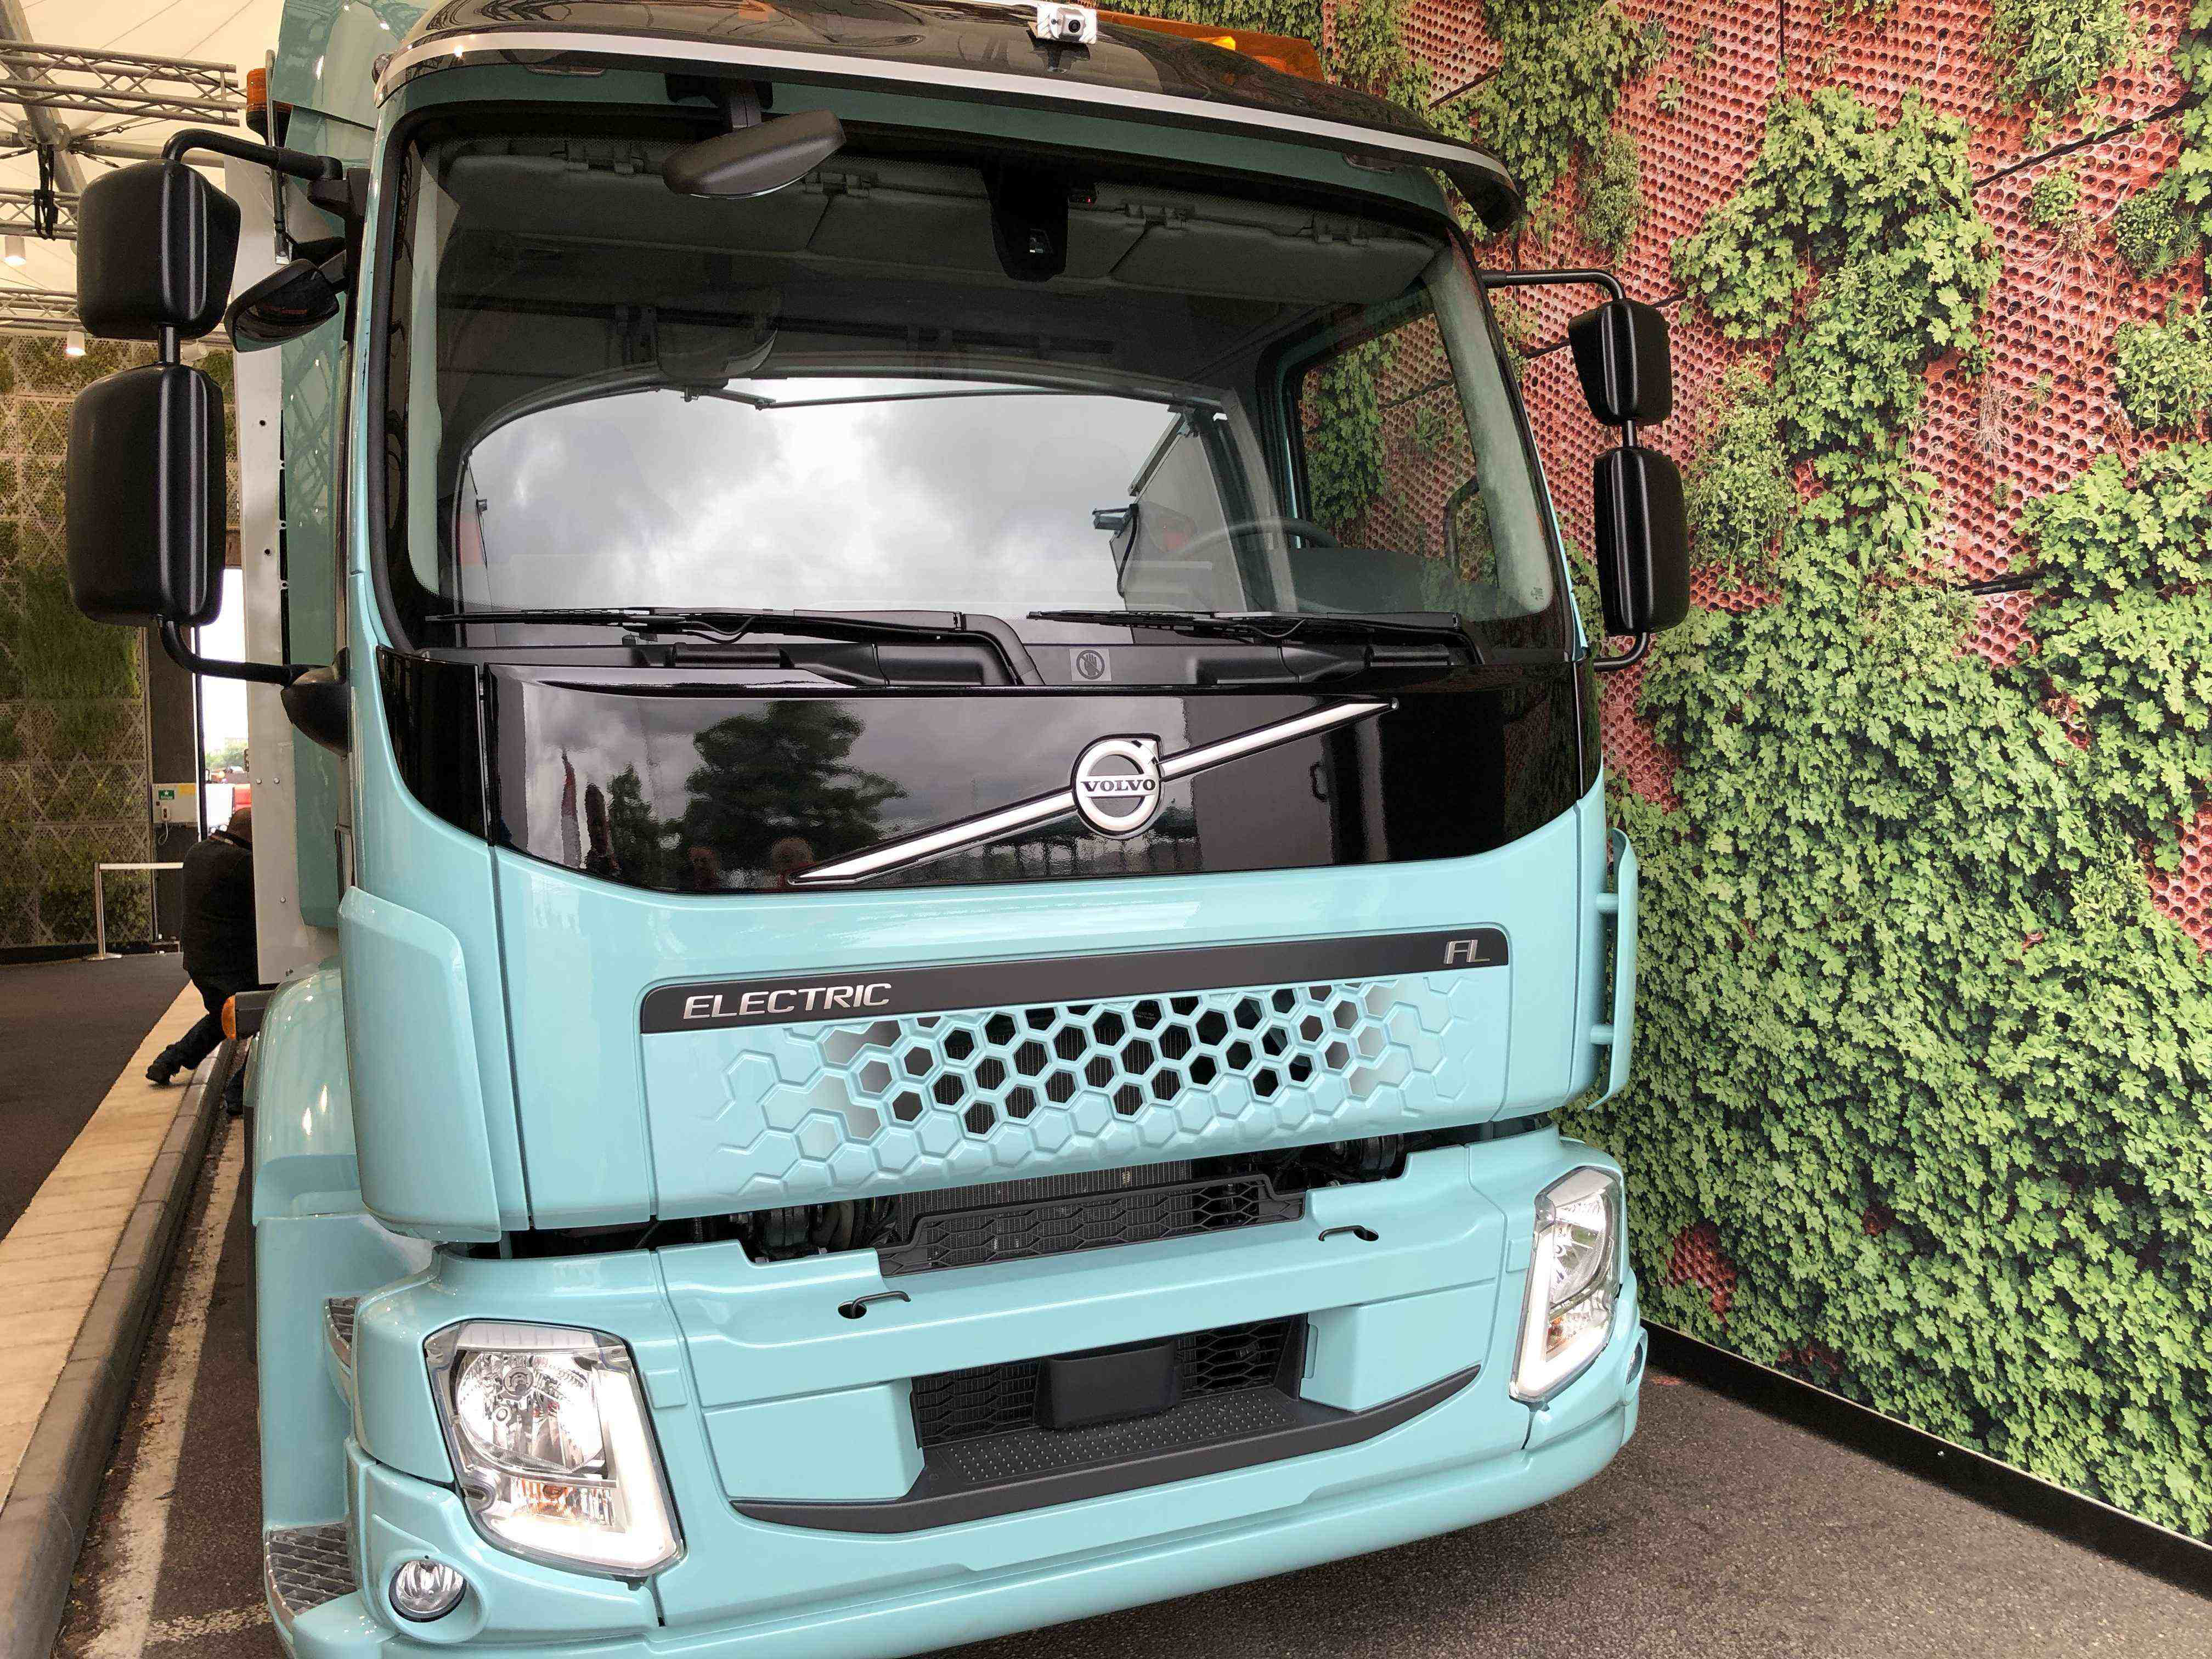 The fully electric FE and FL model trucks from Volvo Trucks